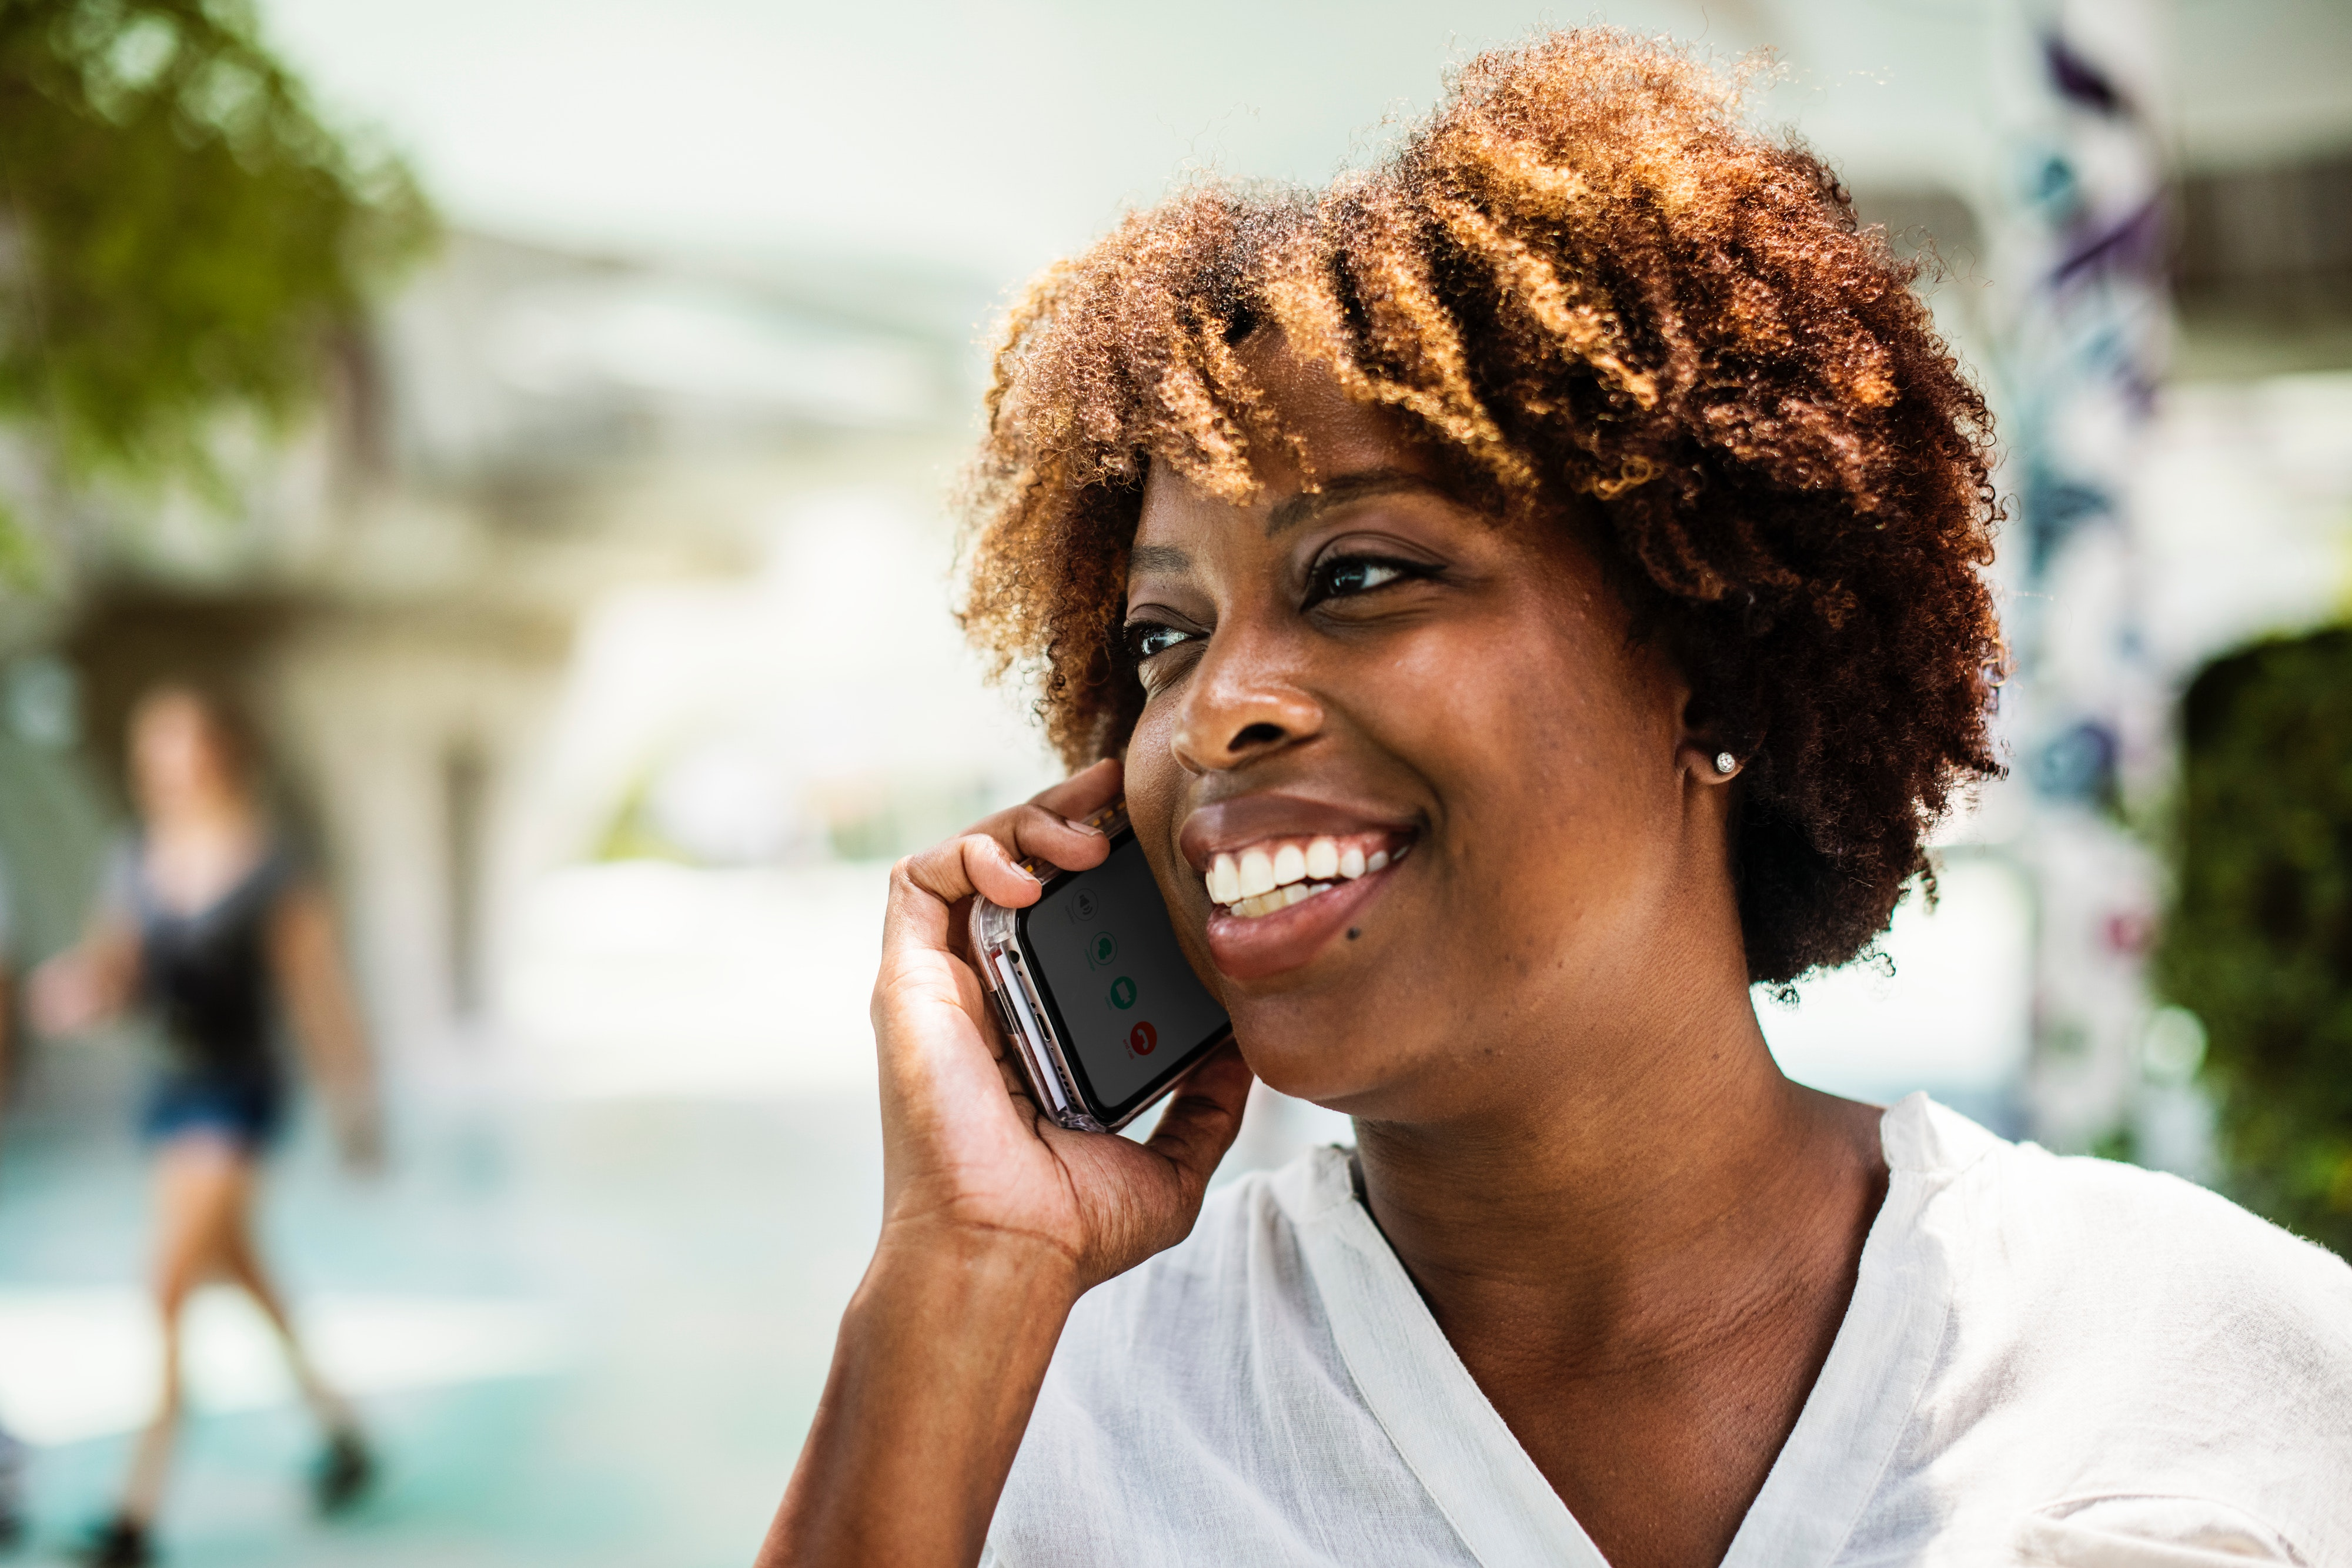 Smiling woman on the phone - photo: Pixabay